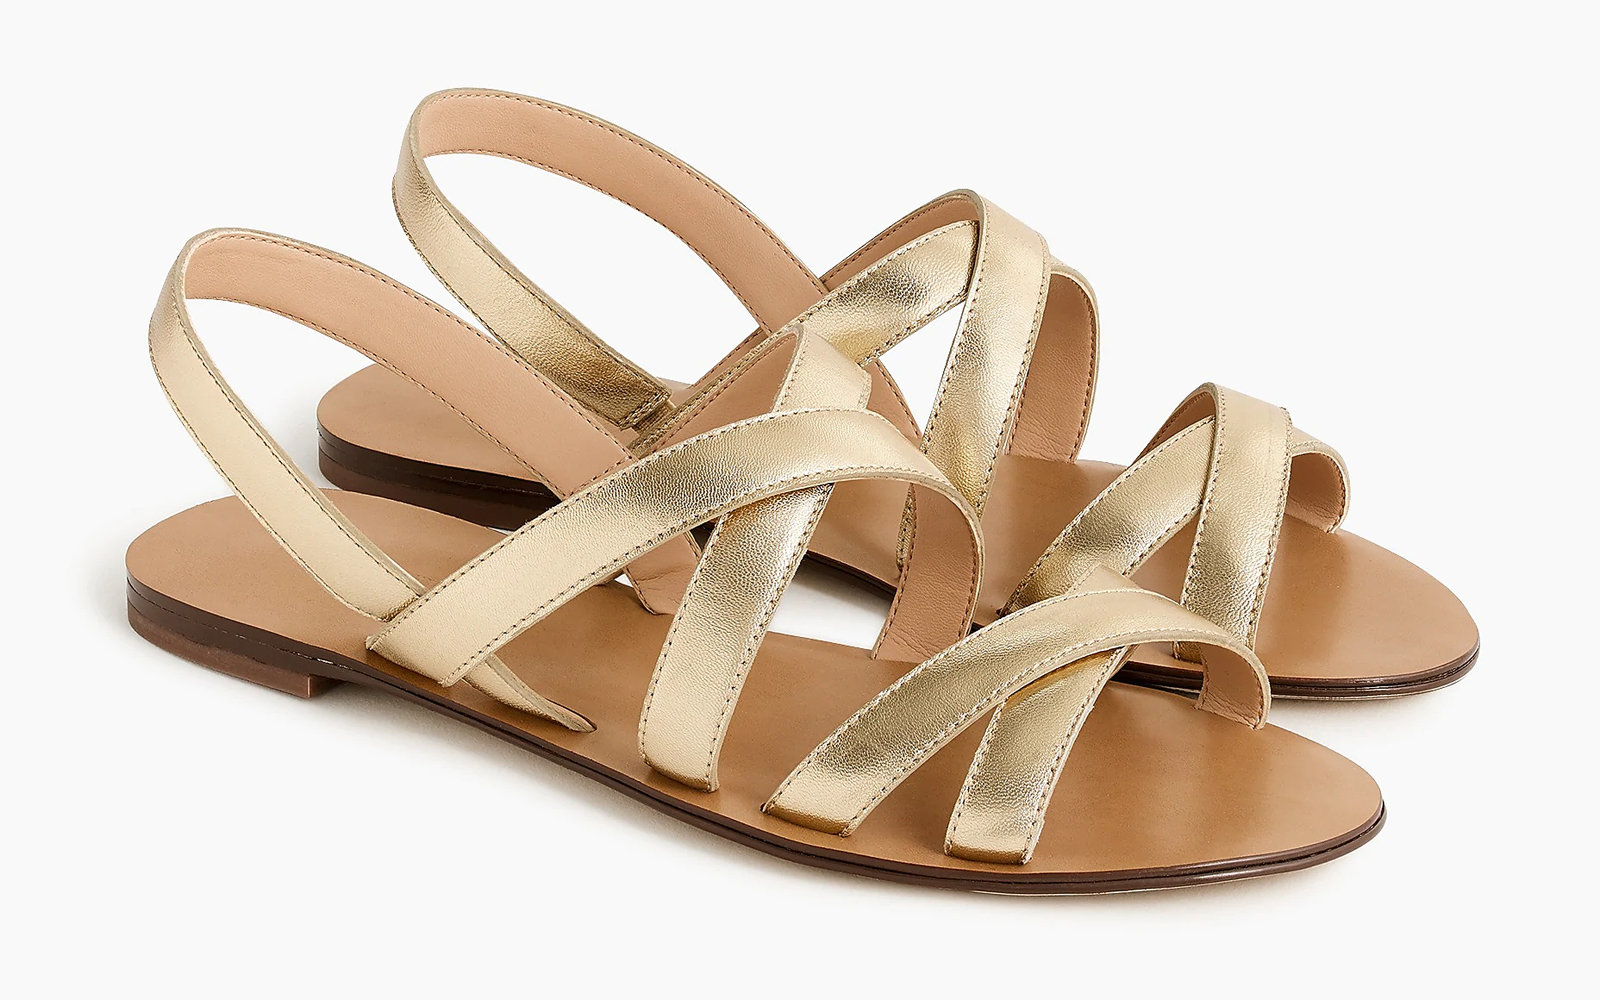 Cross-strap Sandals in Metallic Gold Leather